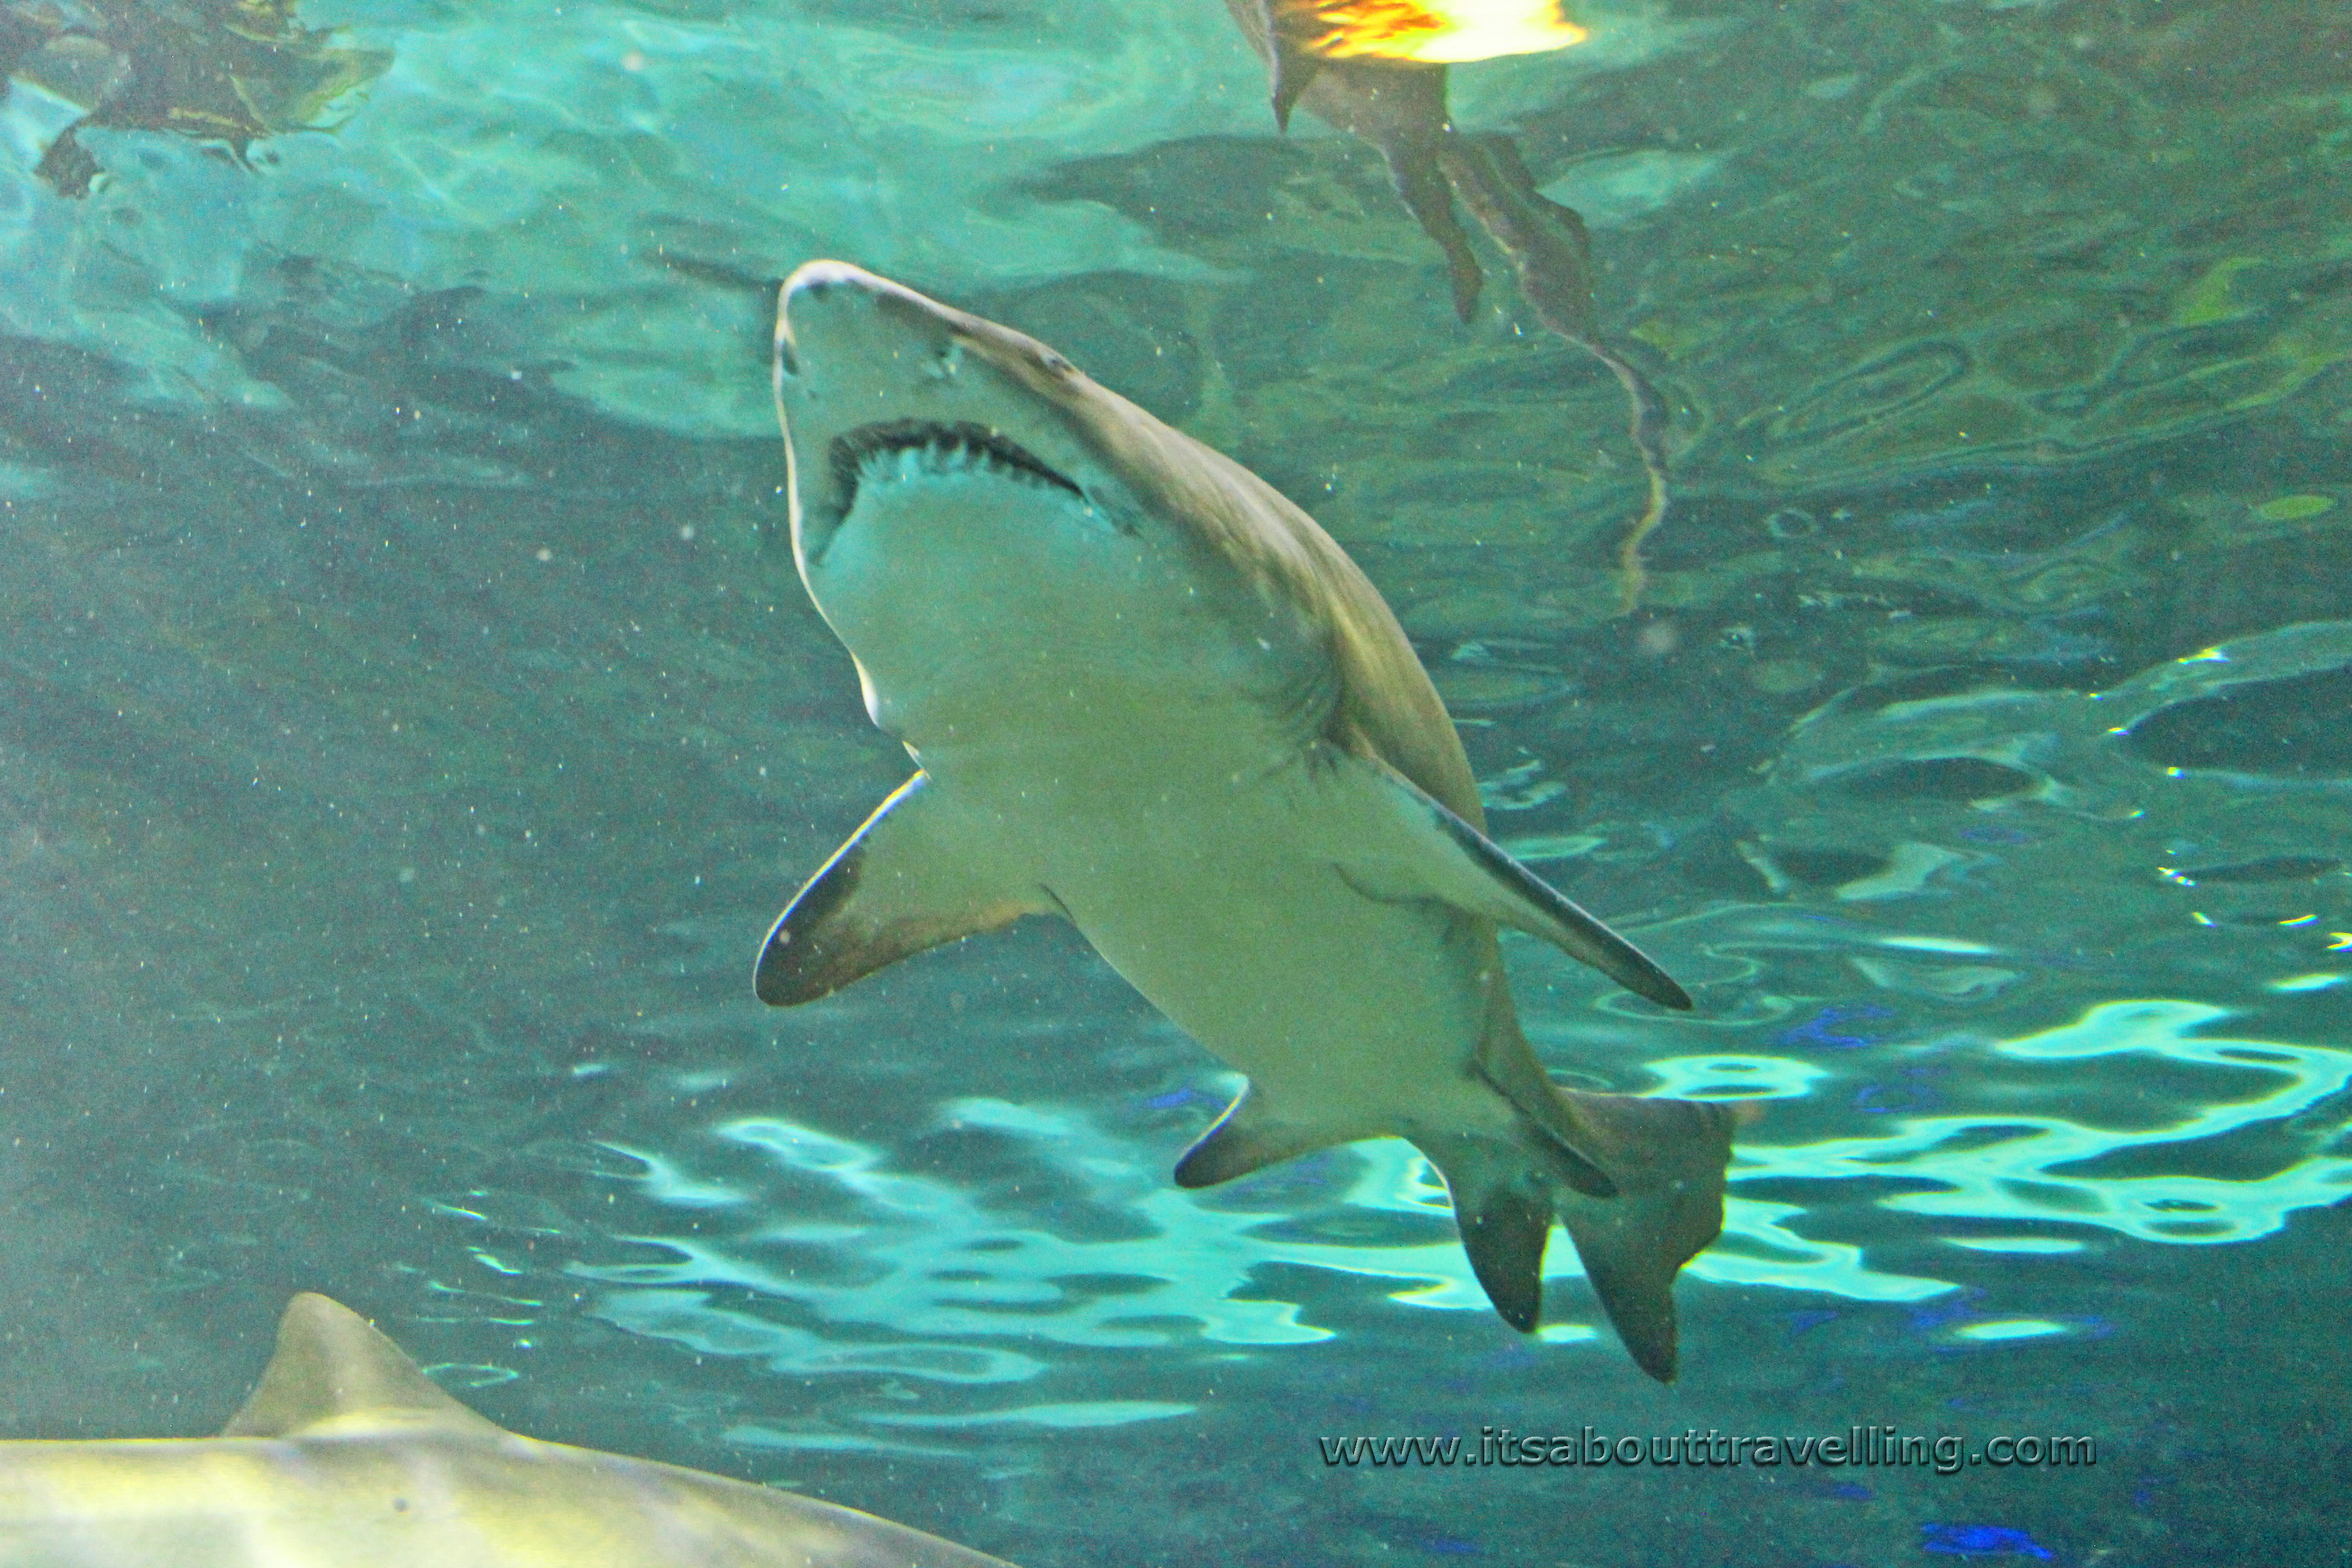 Fish aquarium in canada - Reef Shark Ripleys Aquarium Canada Toronto